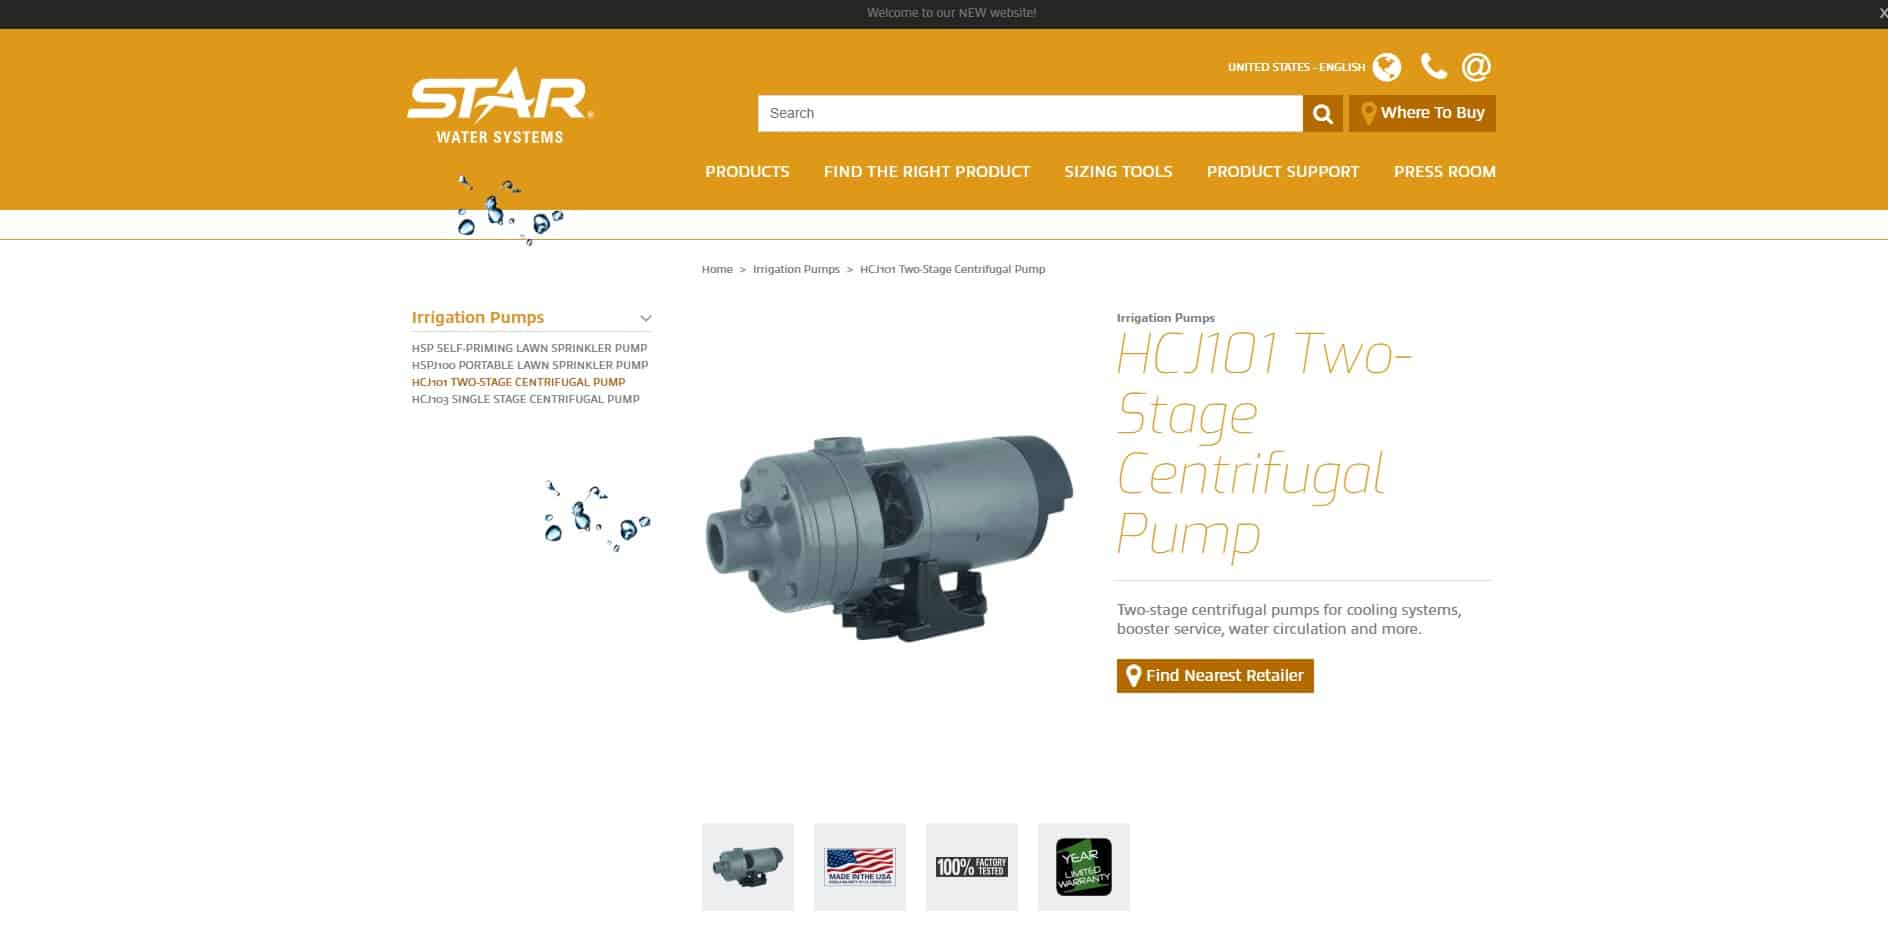 Star Water Systems